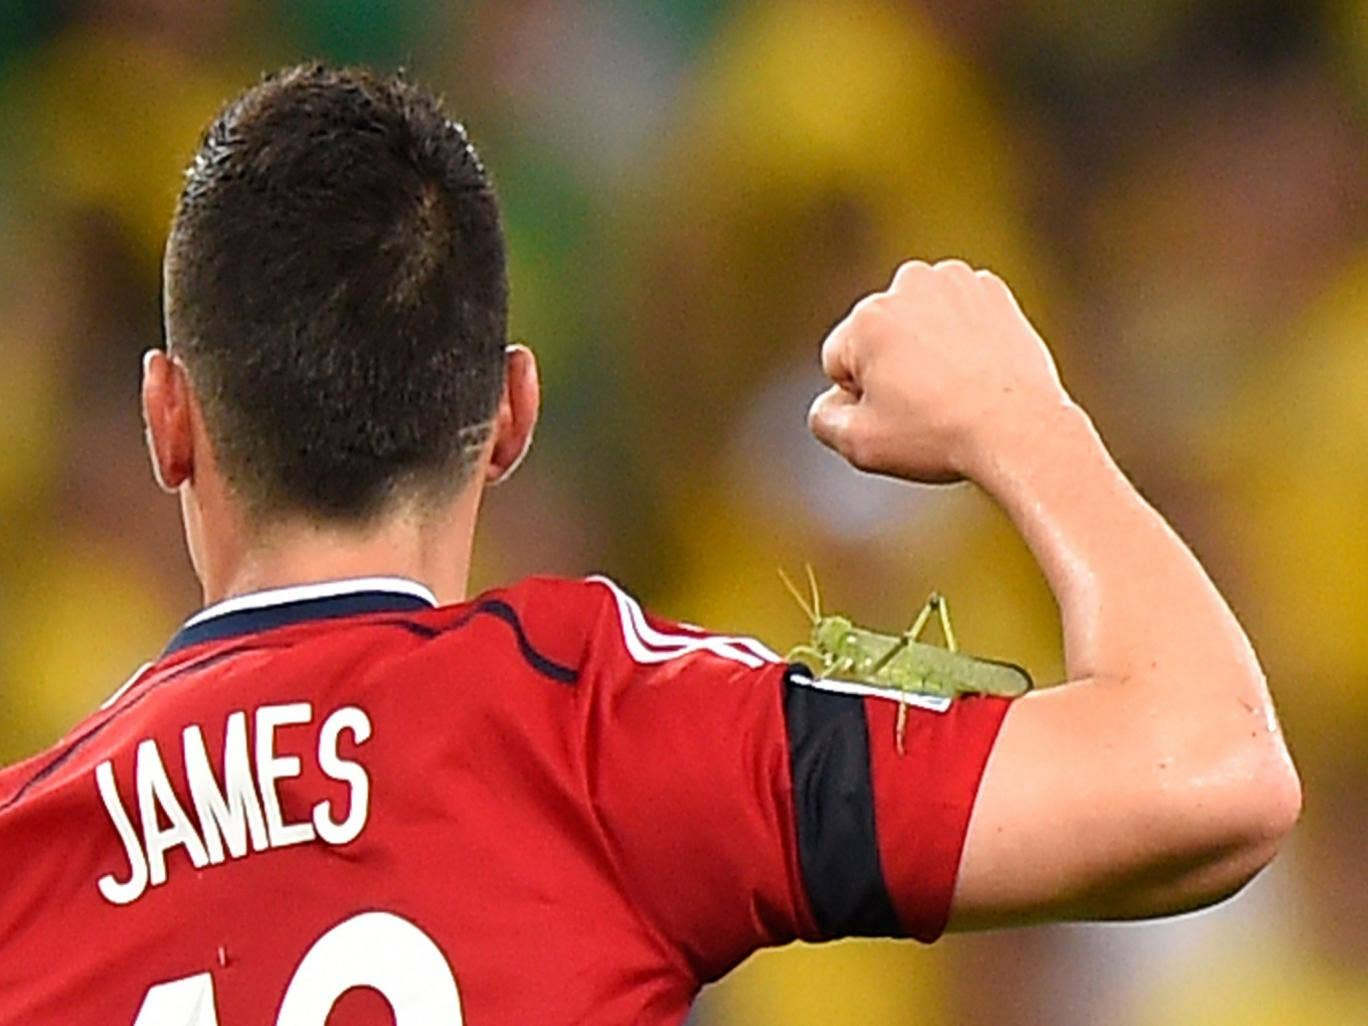 Colombia star James Rodriguez celebrates but is unaware that a grasshopper is on his arm